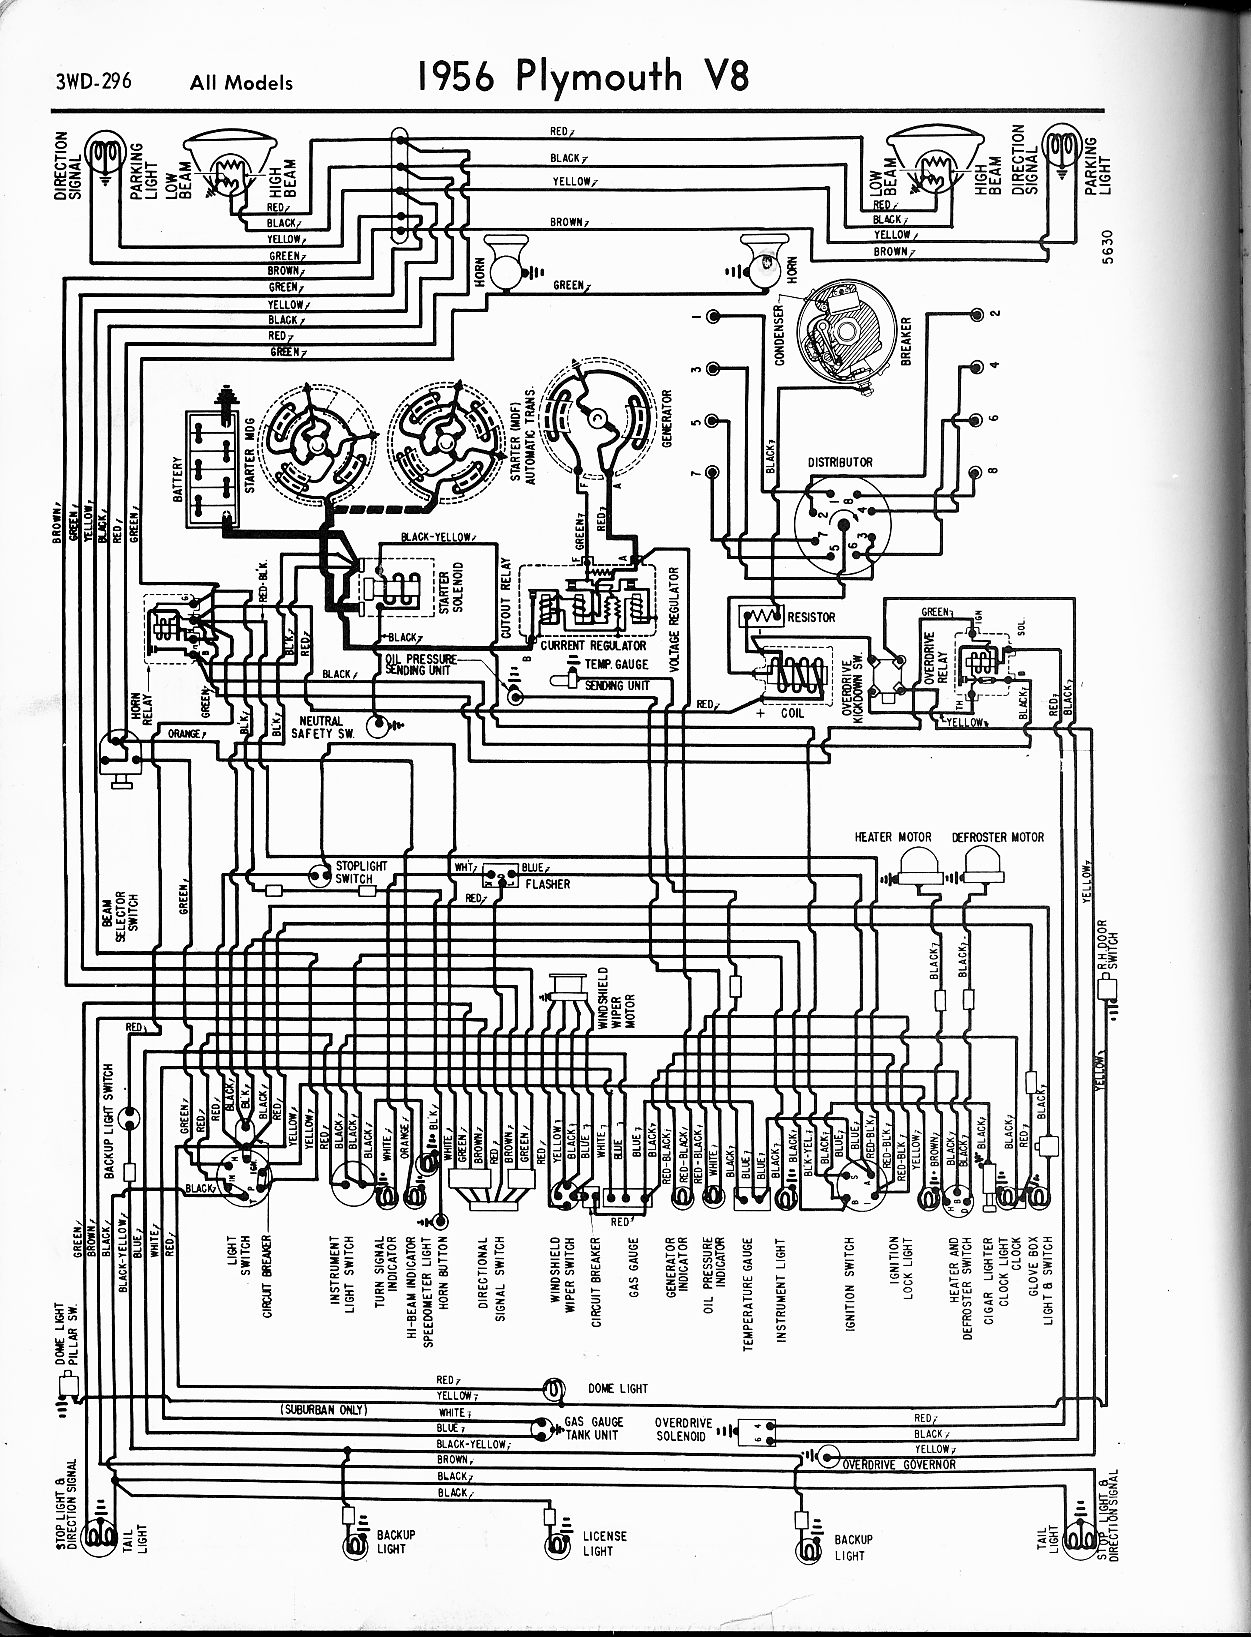 1955 Dodge Wiring Diagram Data Ram Van Schematic Plymouth Belvedere For Sale On 1934 Truck 1952